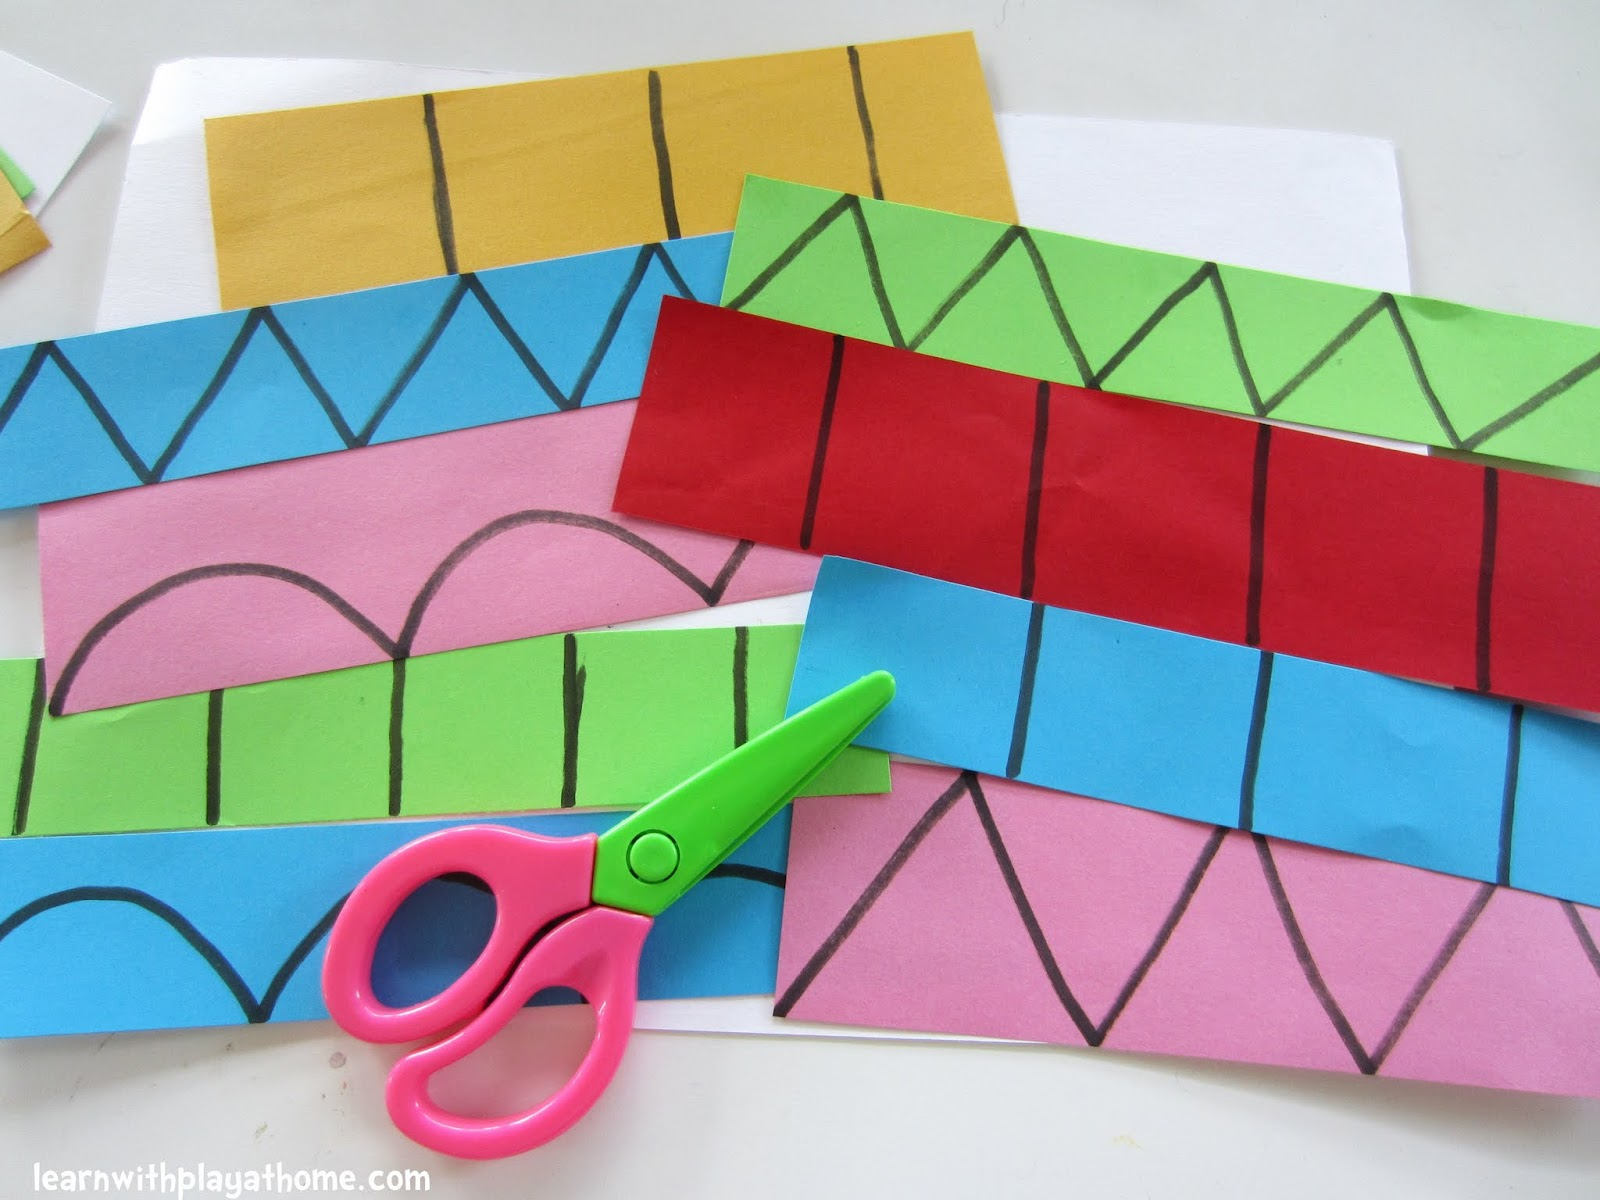 Lines And Shapes : Learn with play at home cutting practice learning shapes